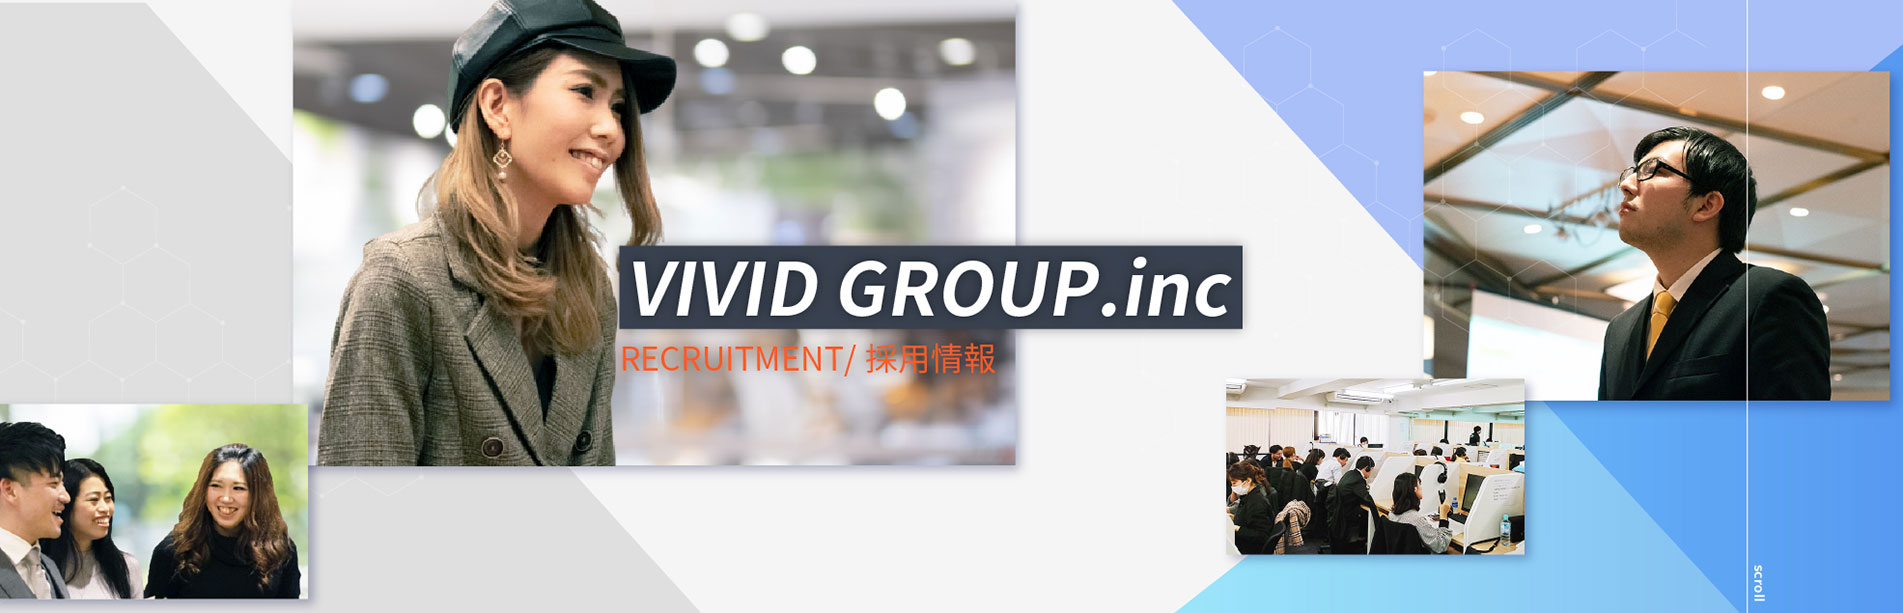 VIVID GROUP.inc RECRUITMENT 採用情報